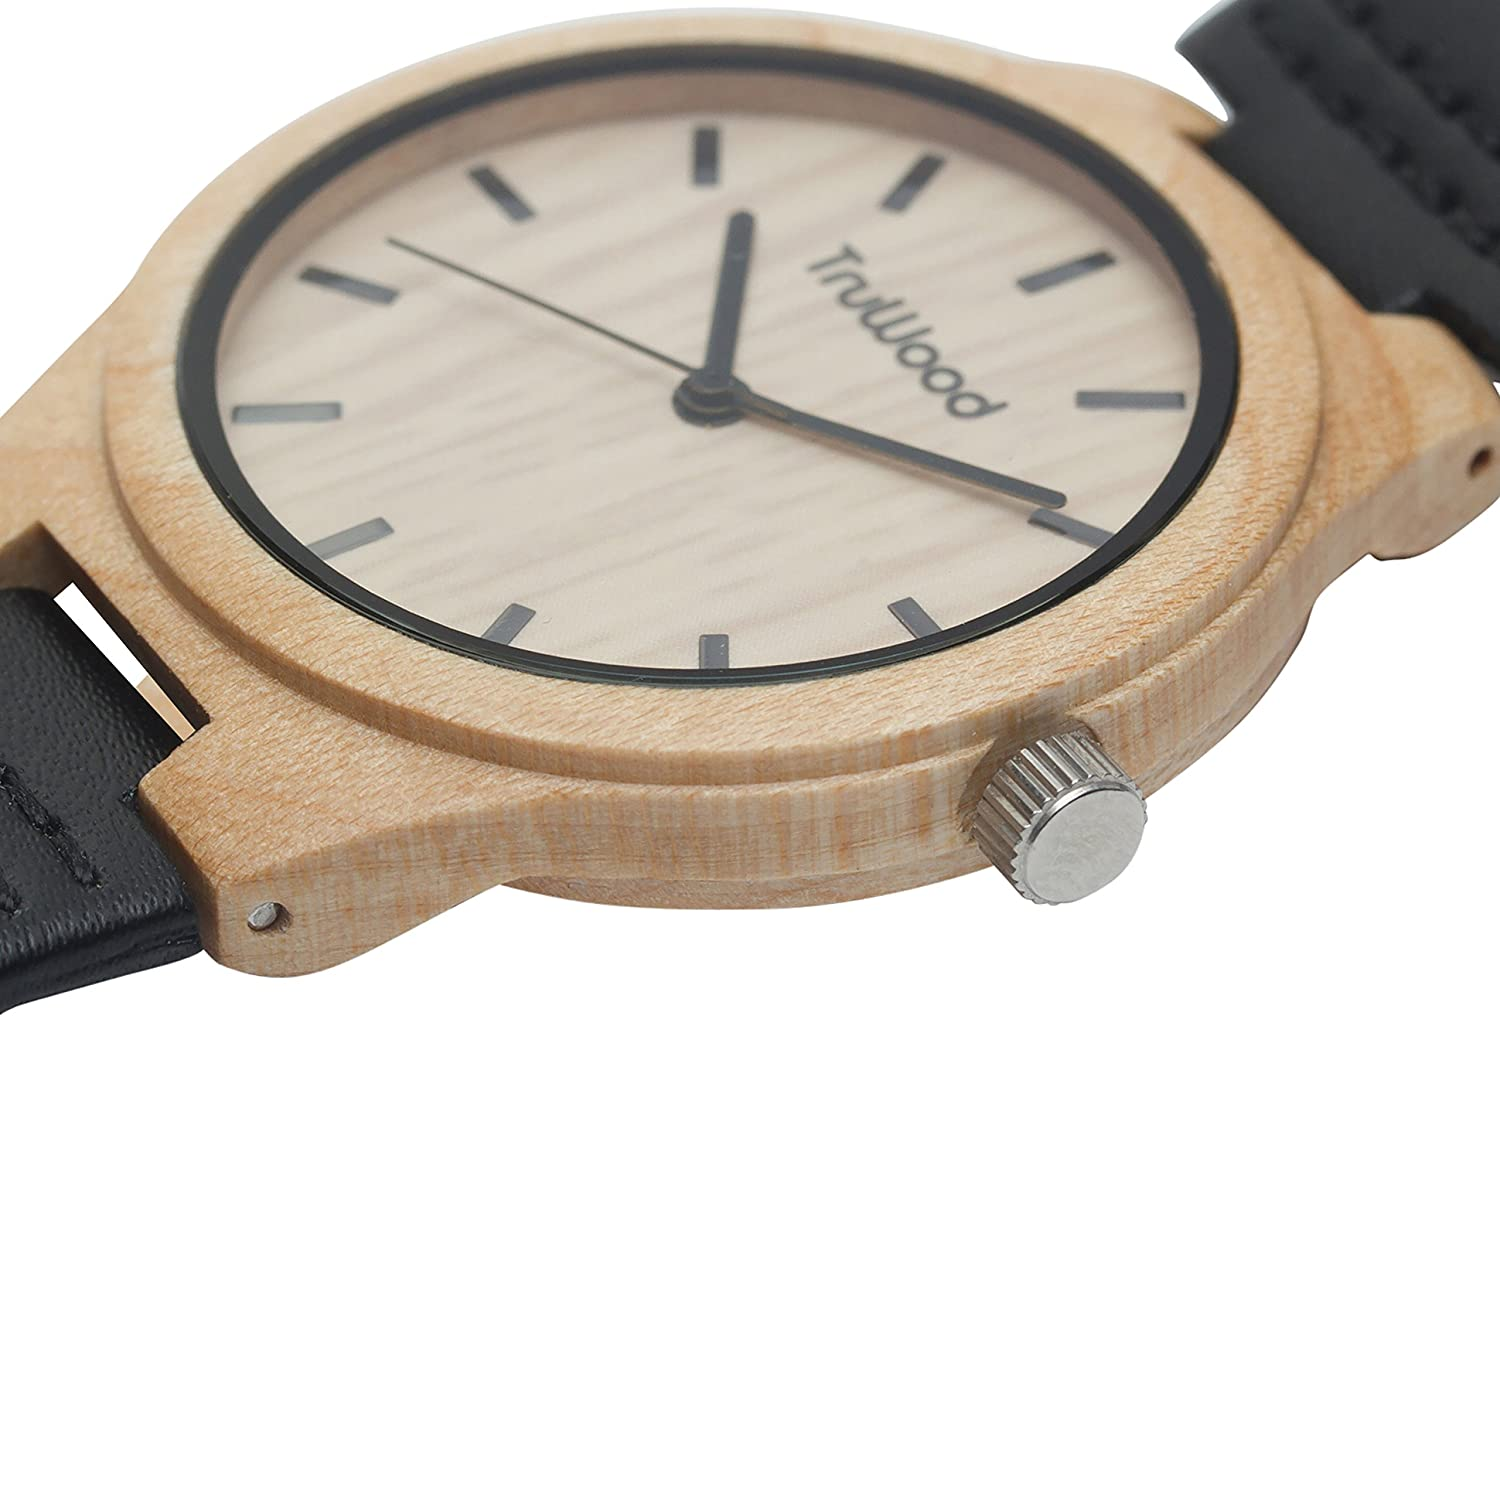 bn watches truwood counterclockwise mem edit brunei